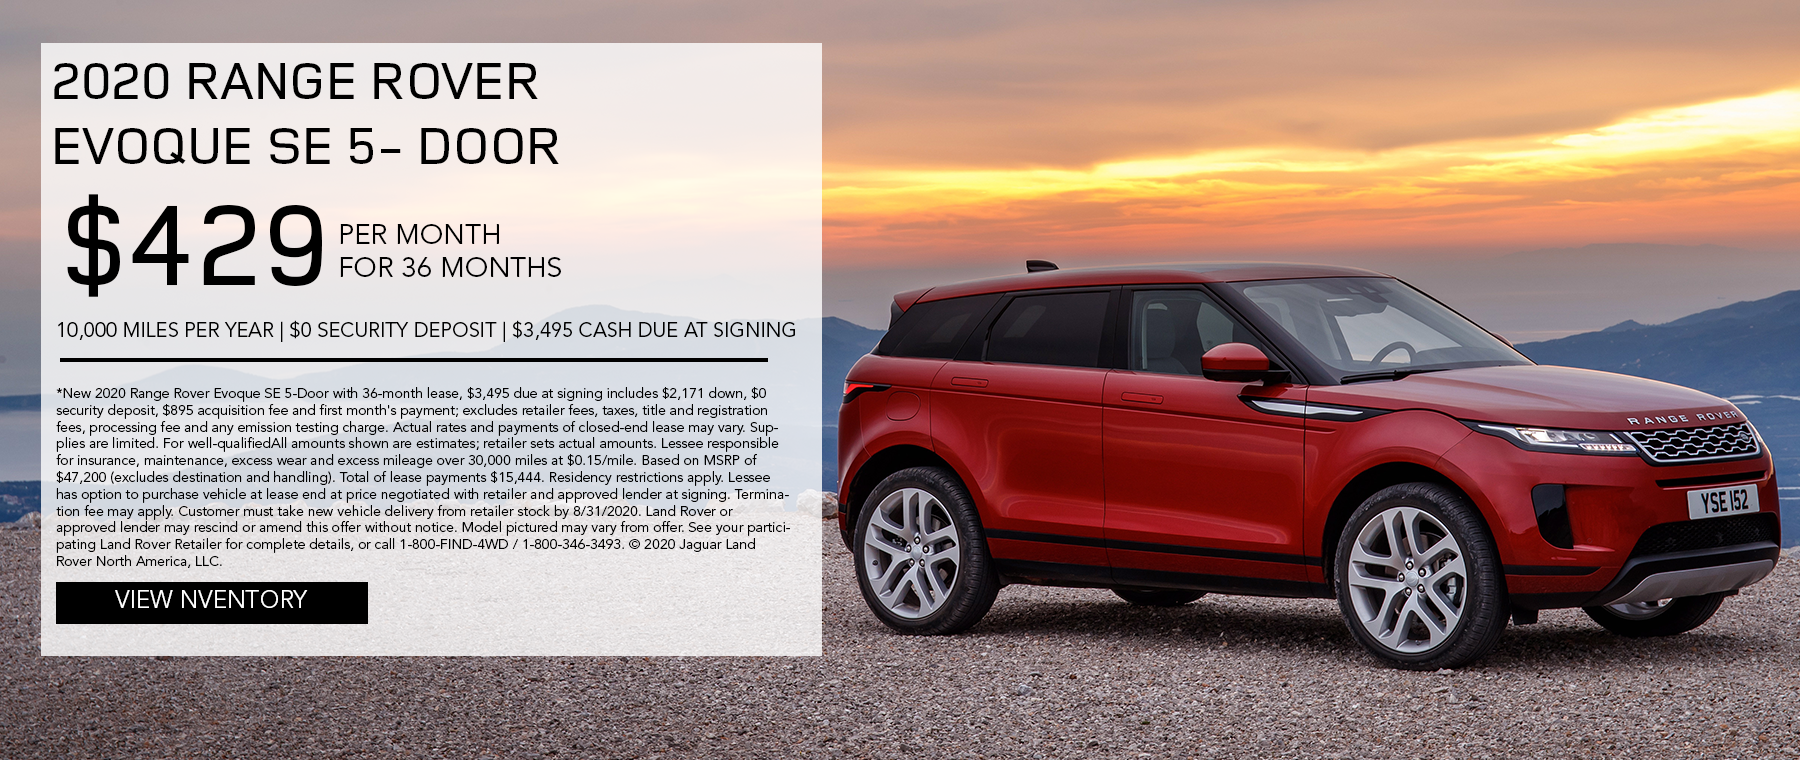 2020 RANGE ROVER EVOQUE SE 5-DOOR. $429 PER MONTH. 36 MONTH LEASE TERM. $3,495 CASH DUE AT SIGNING. $0 SECURITY DEPOSIT. 10,000 MILES PER YEAR. EXCLUDES RETAILER FEES, TAXES, TITLE AND REGISTRATION FEES, PROCESSING FEE AND ANY EMISSION TESTING CHARGE. ENDS 8/31/2020.